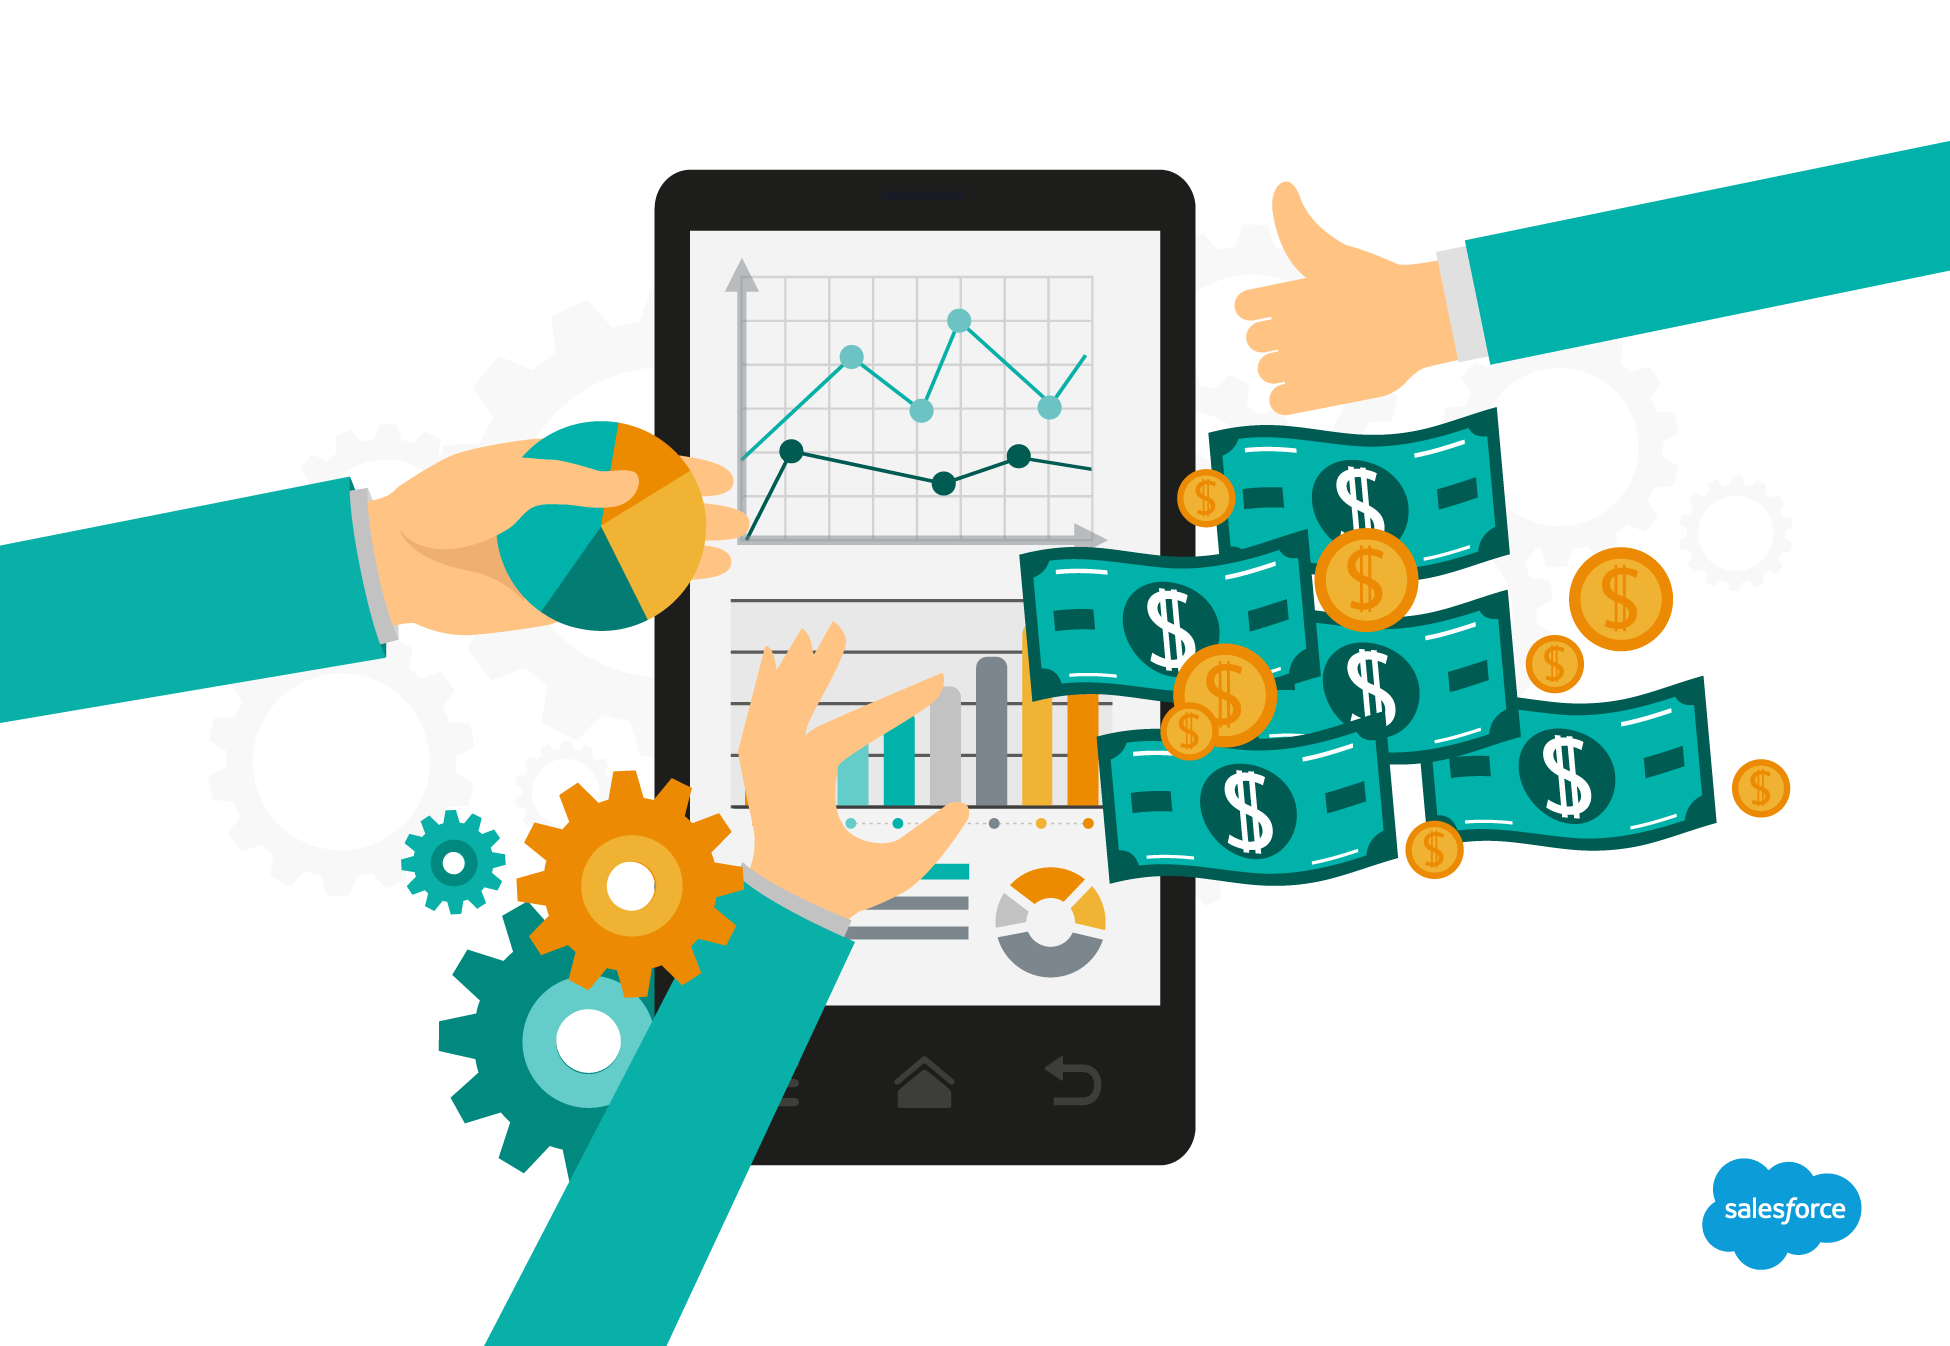 mobile business intelligence increases sales